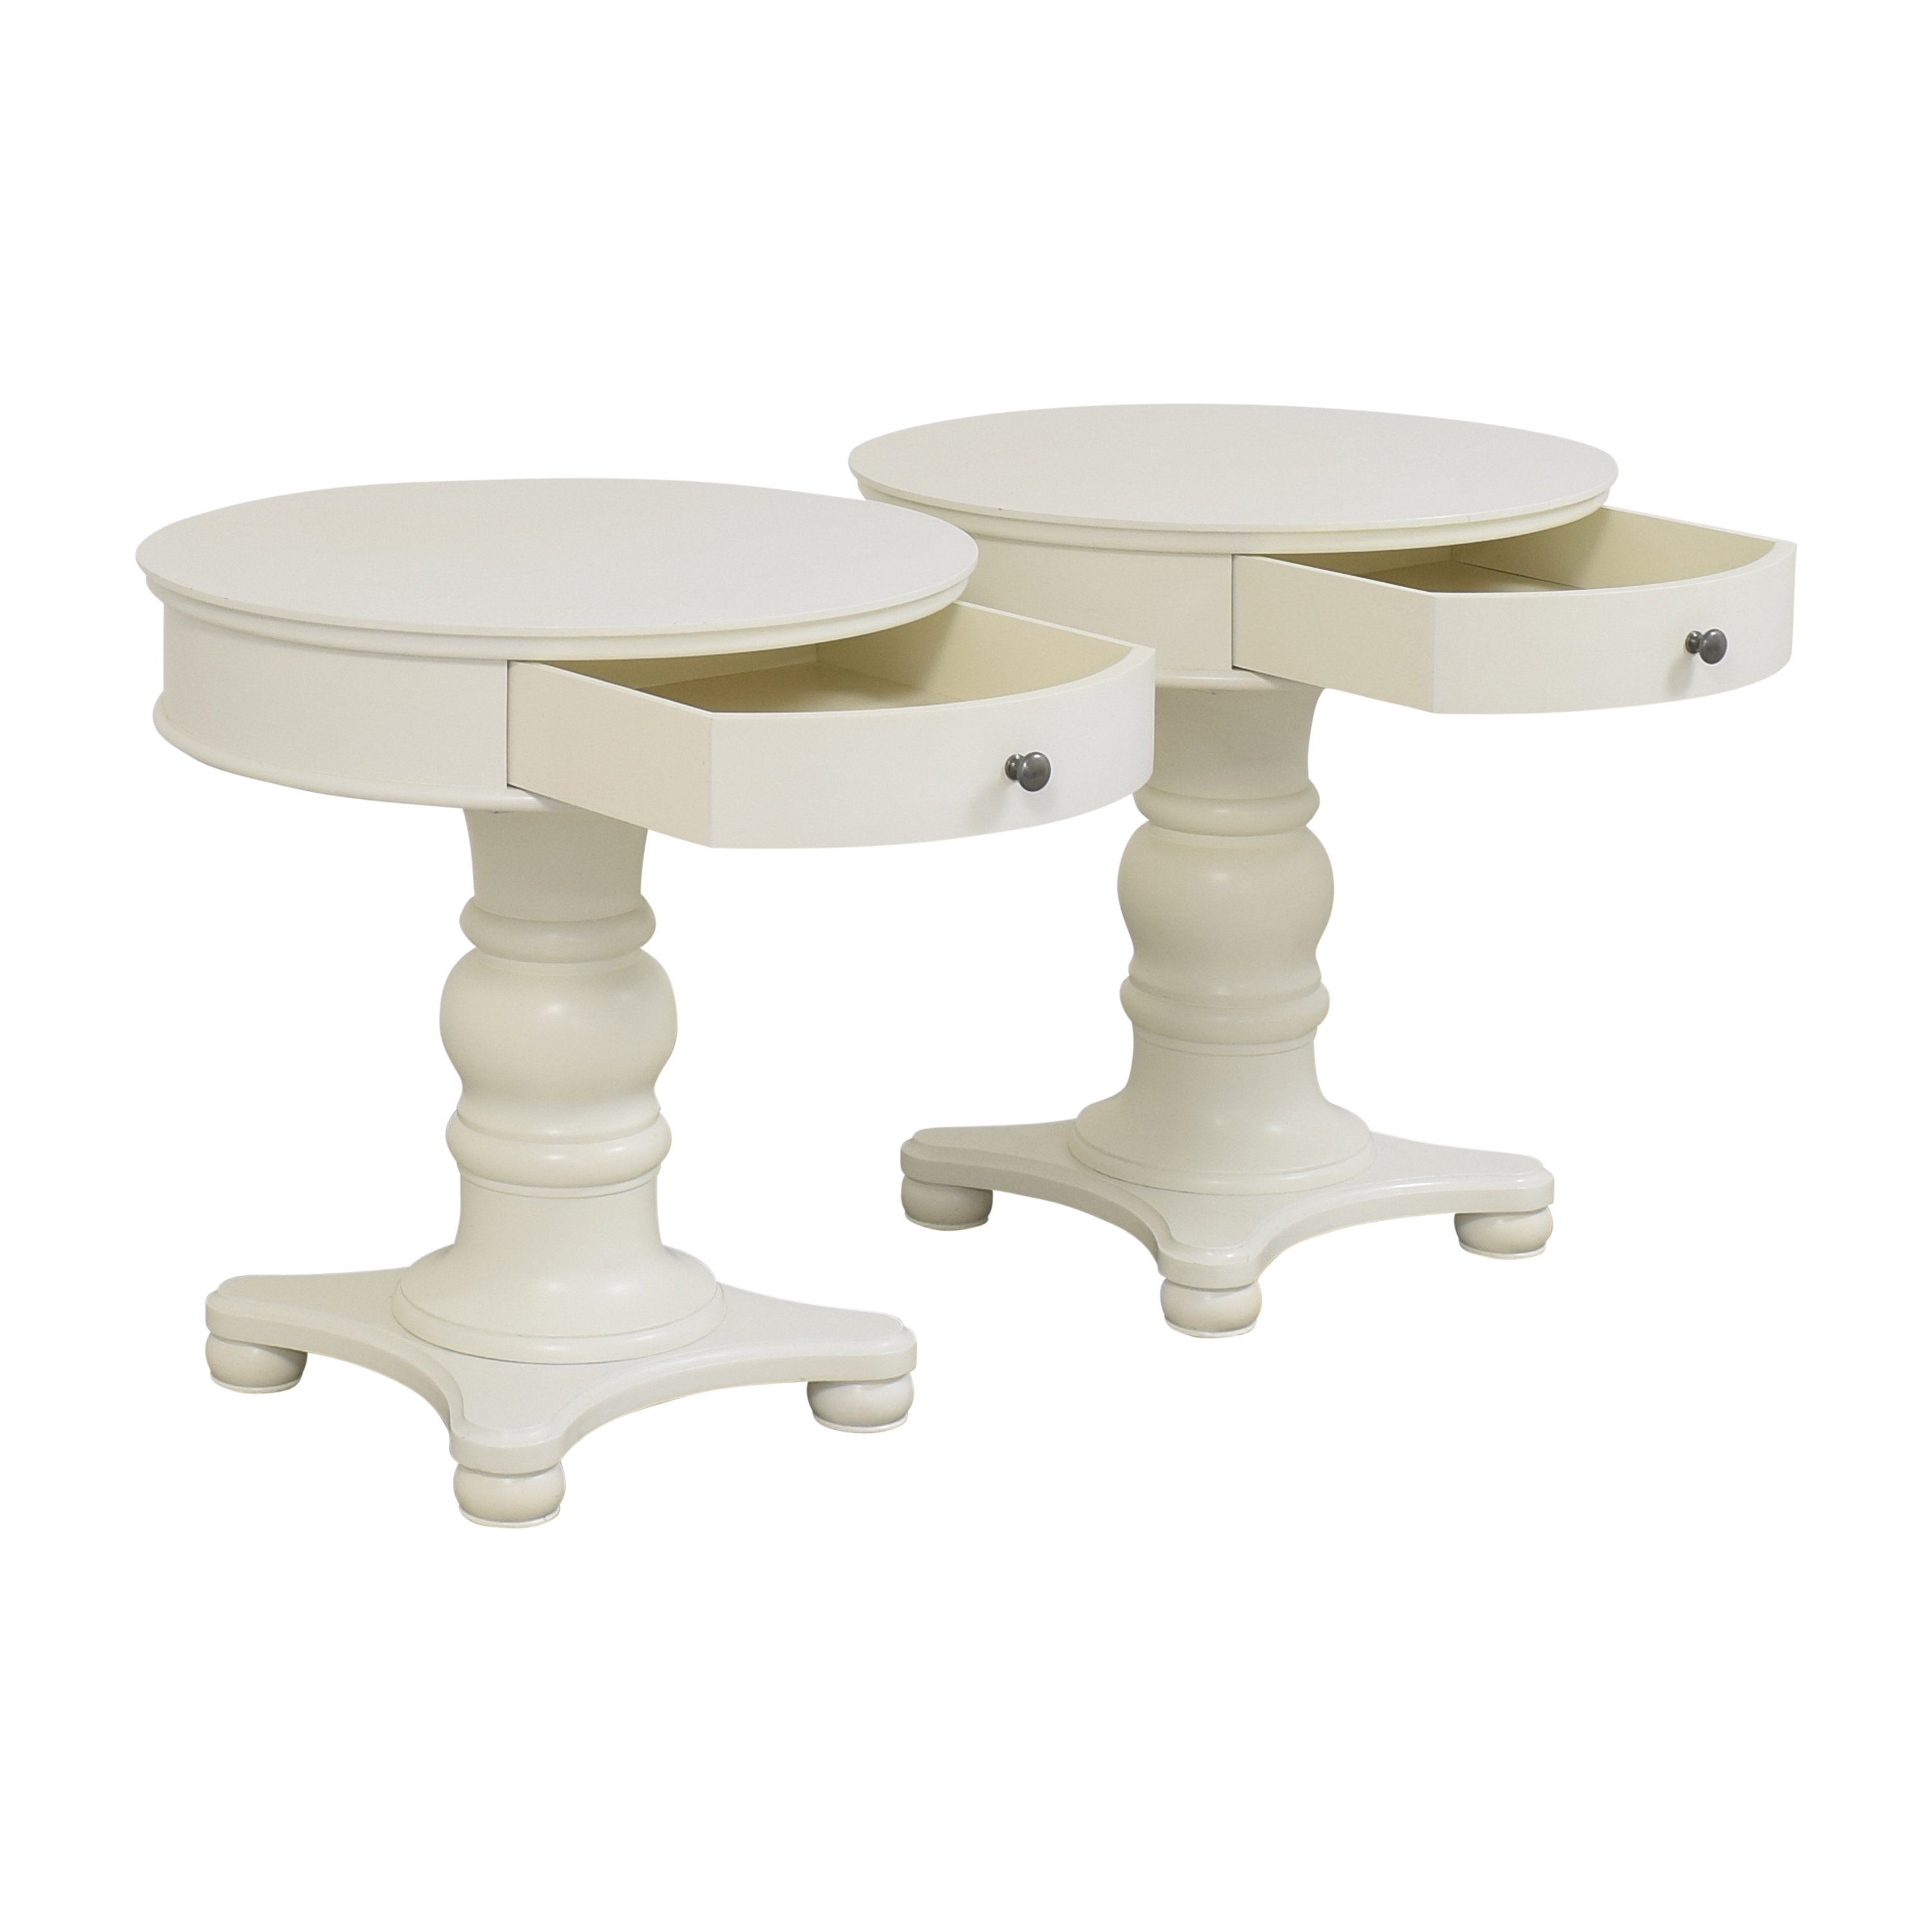 Pottery Barn Pottery Barn Francisco End Tables used